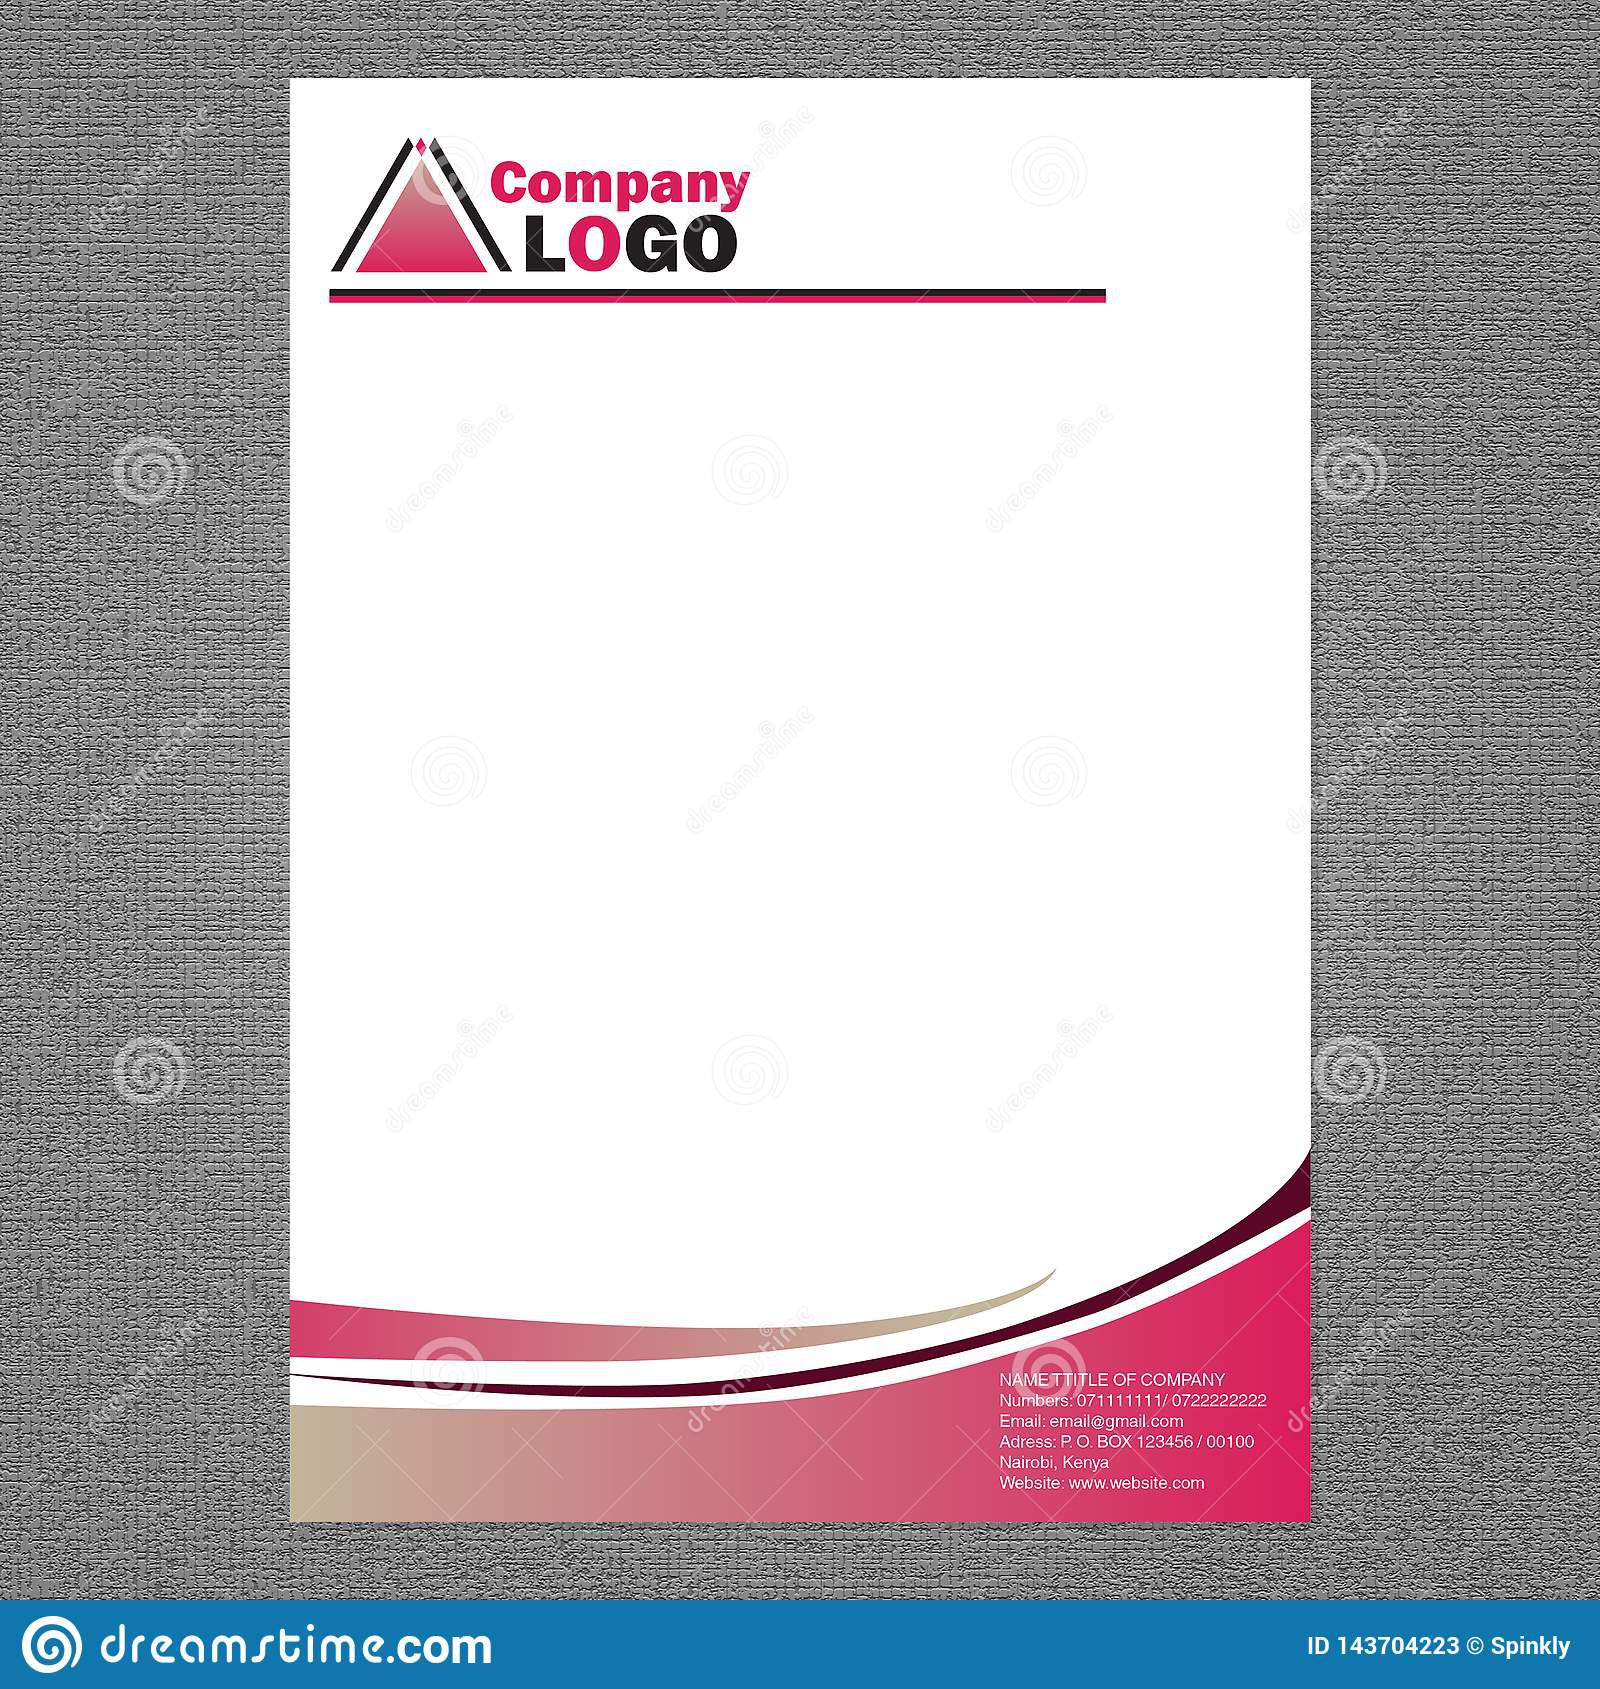 004 Fascinating Letter Pad Design Template Example  Letterhead Download Ai Free In WordFull